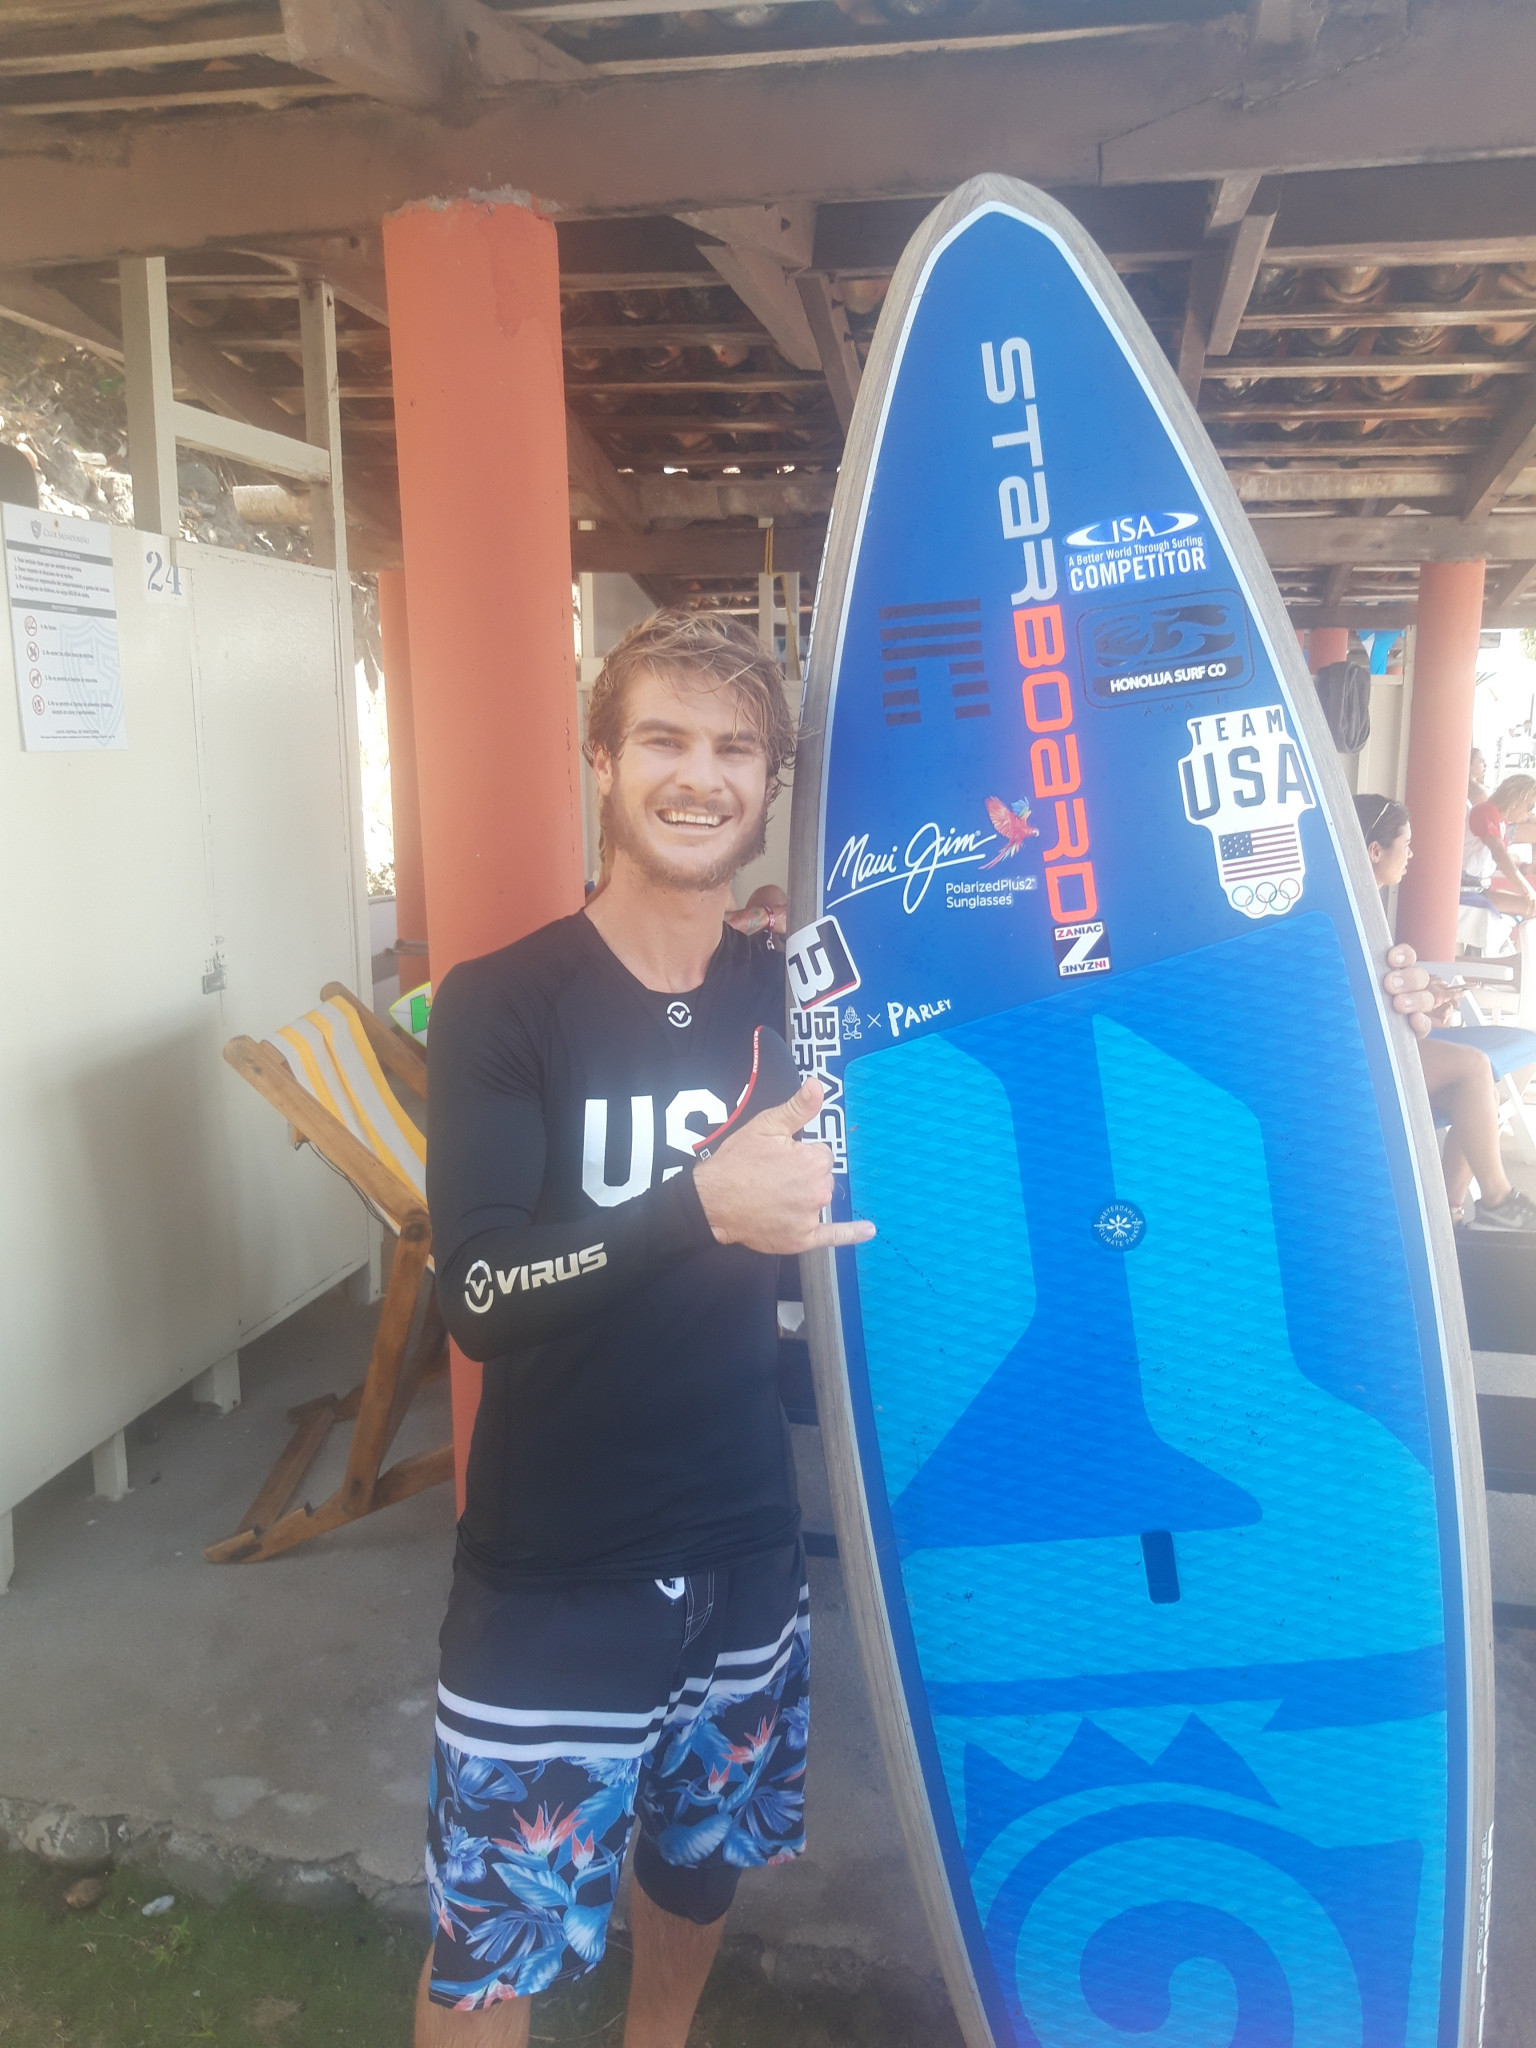 American Zane Schweitzer has backed the ISA to govern the stand-up paddle discipline ©ITG